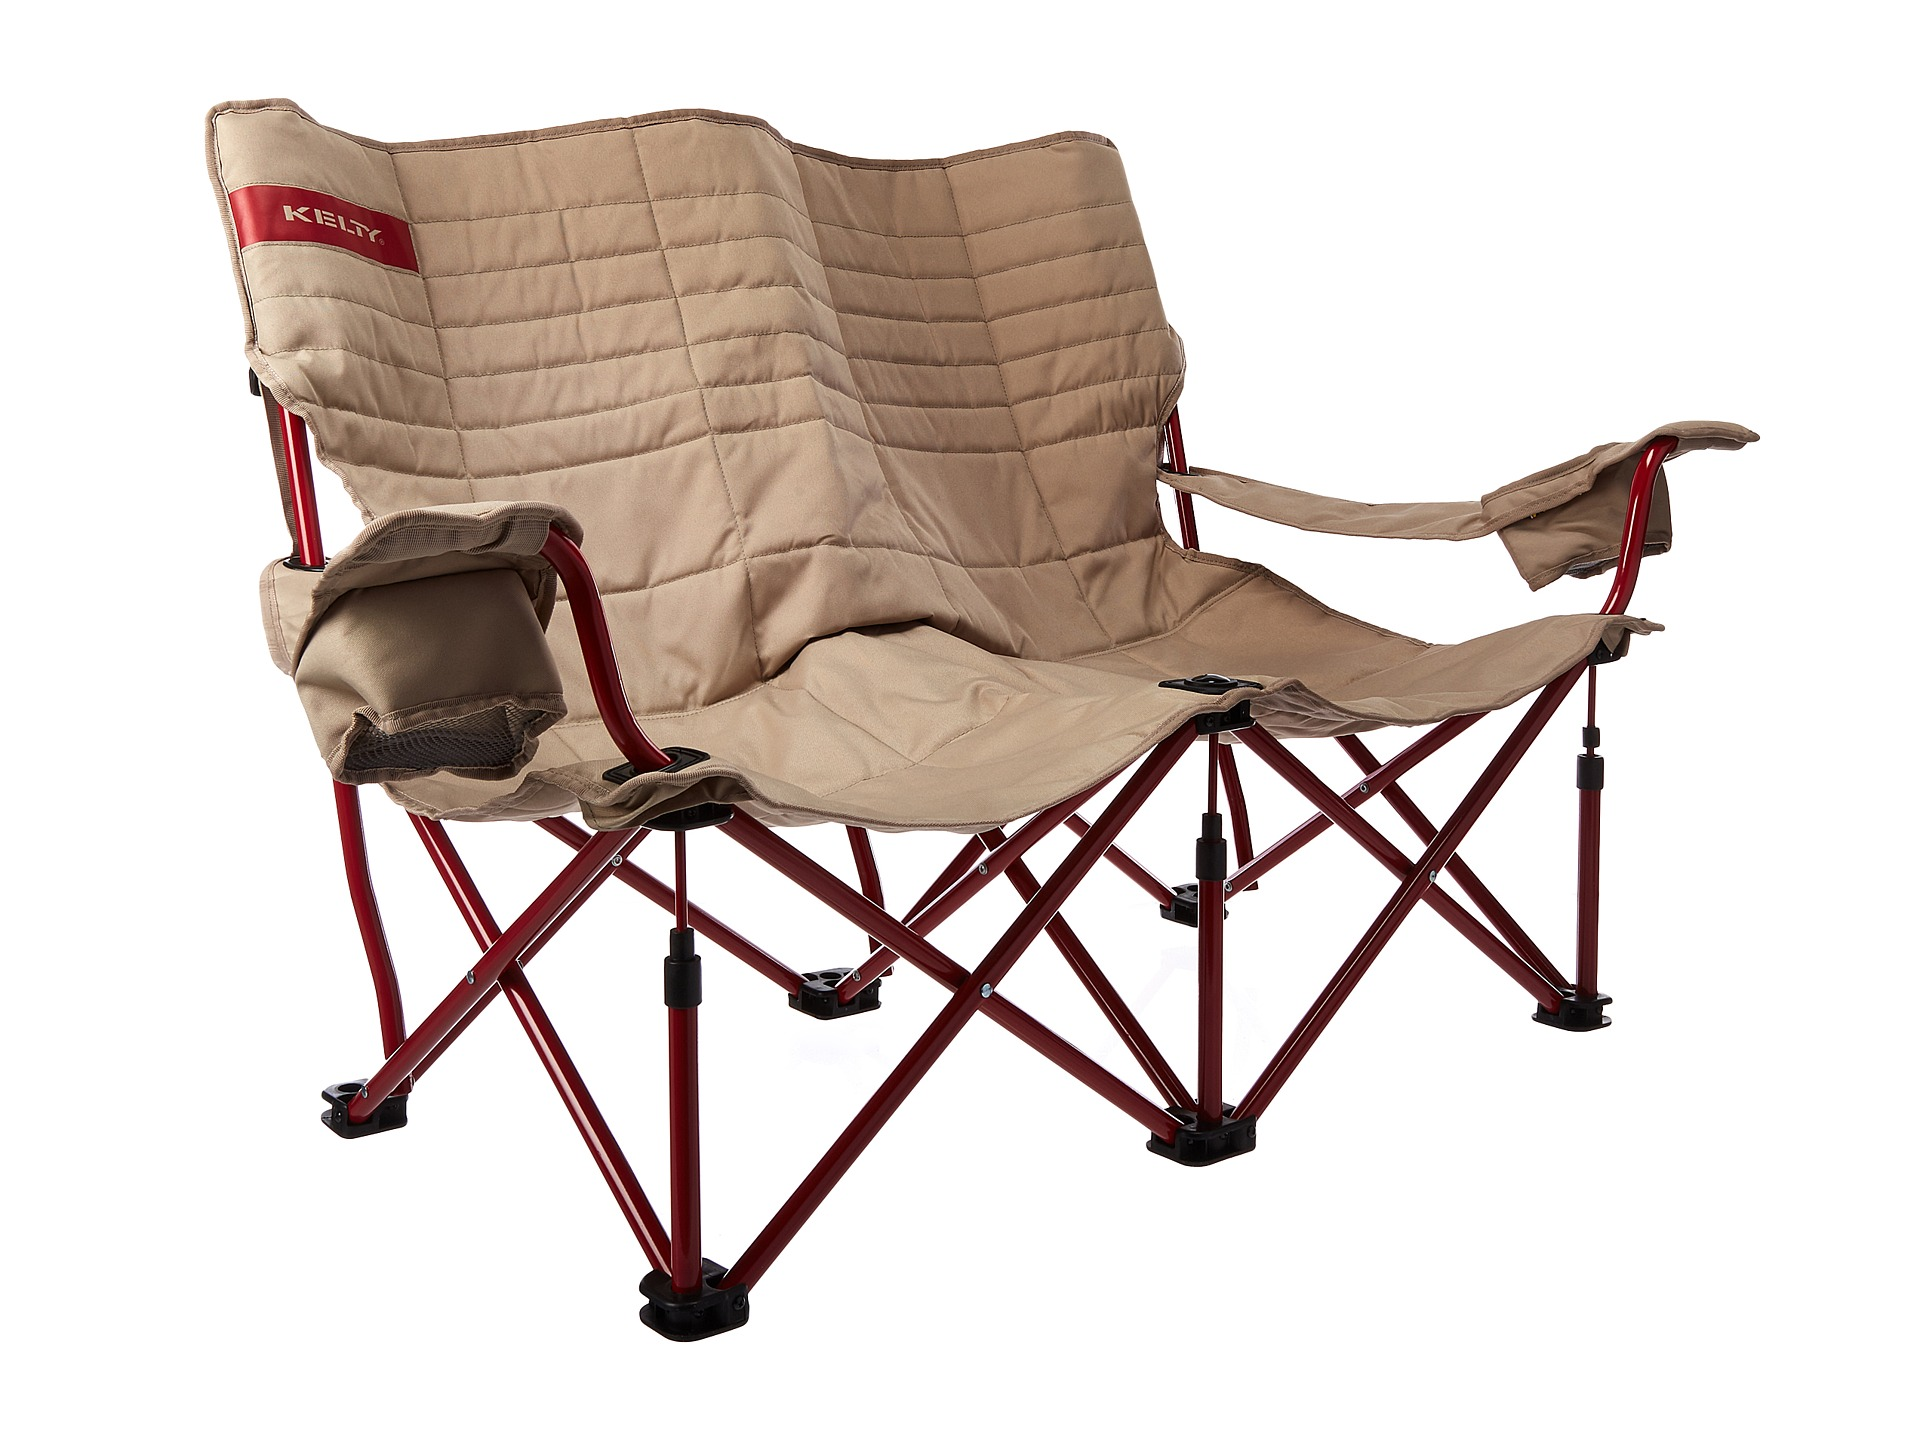 Kelty Low Loveseat Chair Free Shipping Both Ways